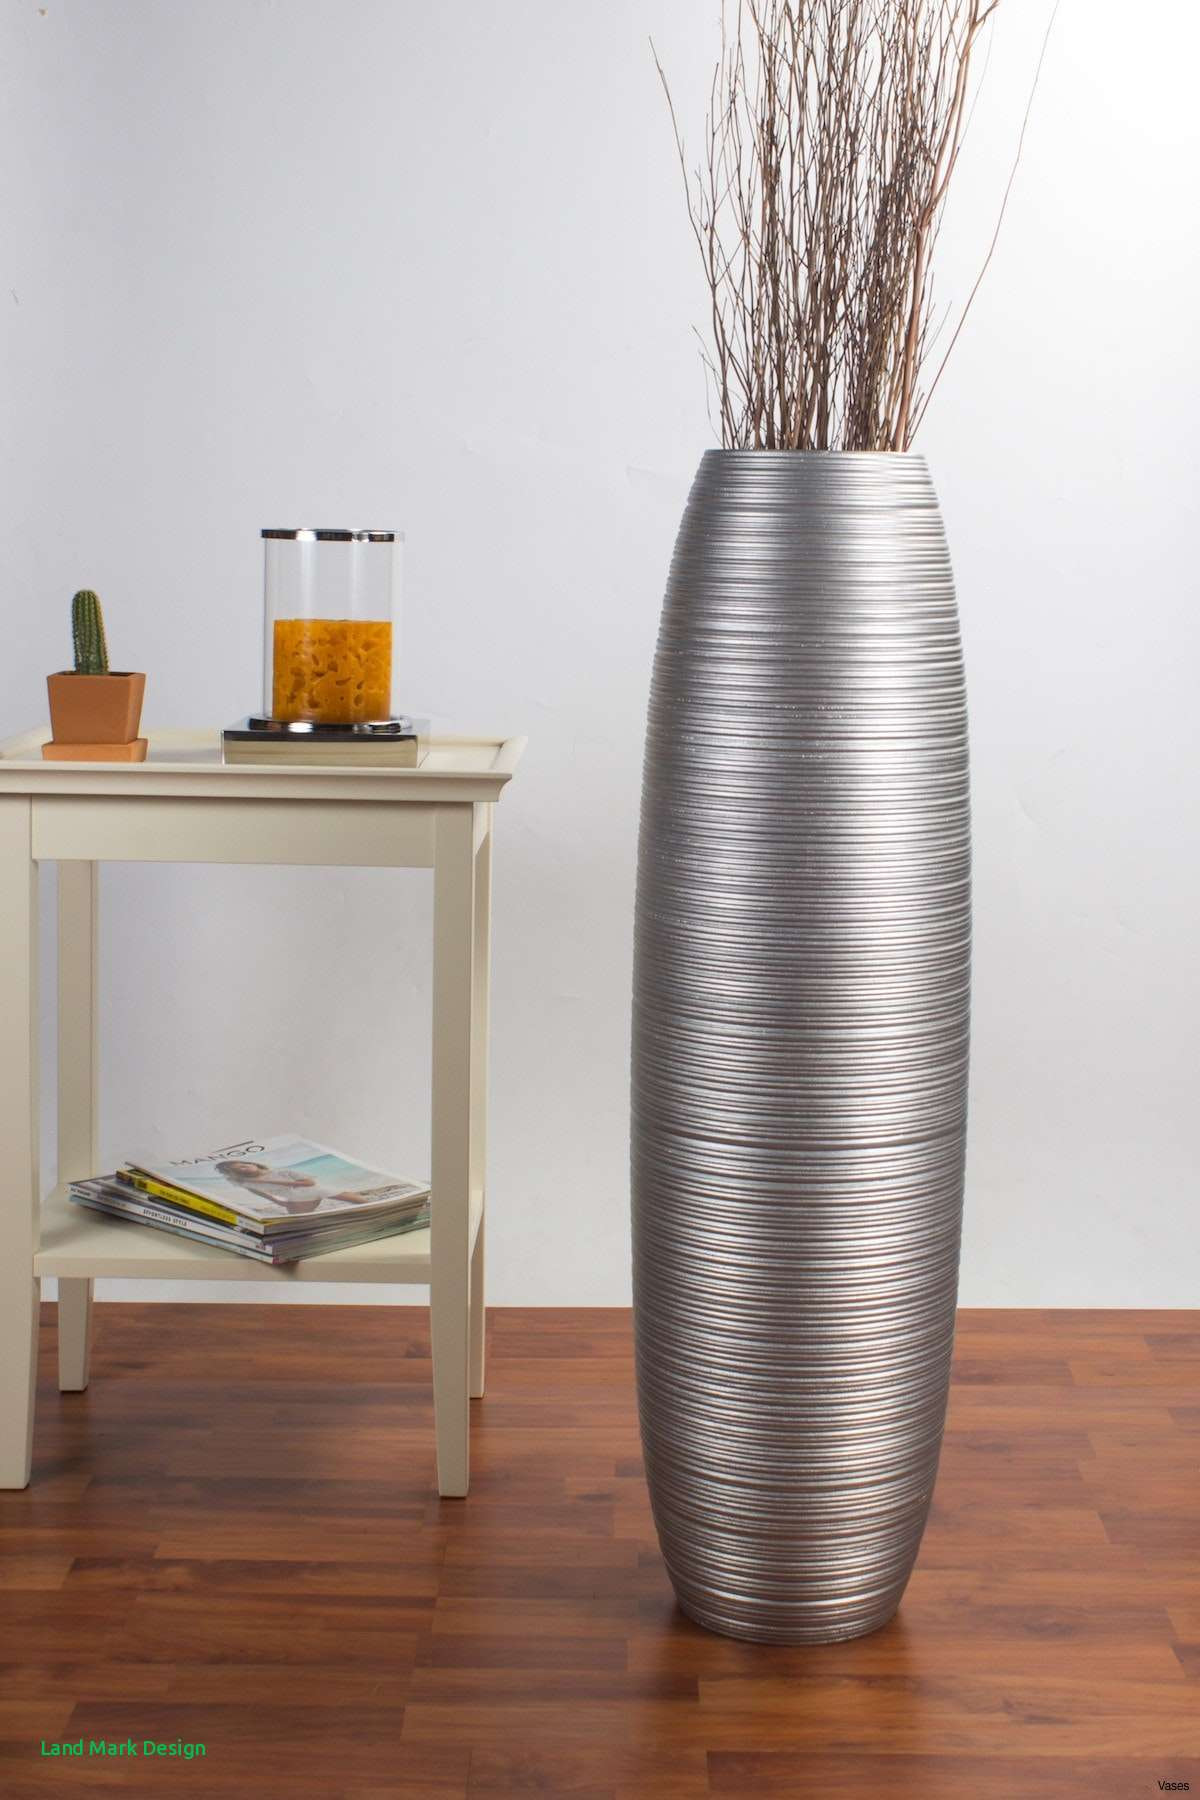 16 inch tall vases of tall wicker vase design home design pertaining to brown tall floor vase 36 inches wood leewadee within vaseh vases wicker living room talli 0d